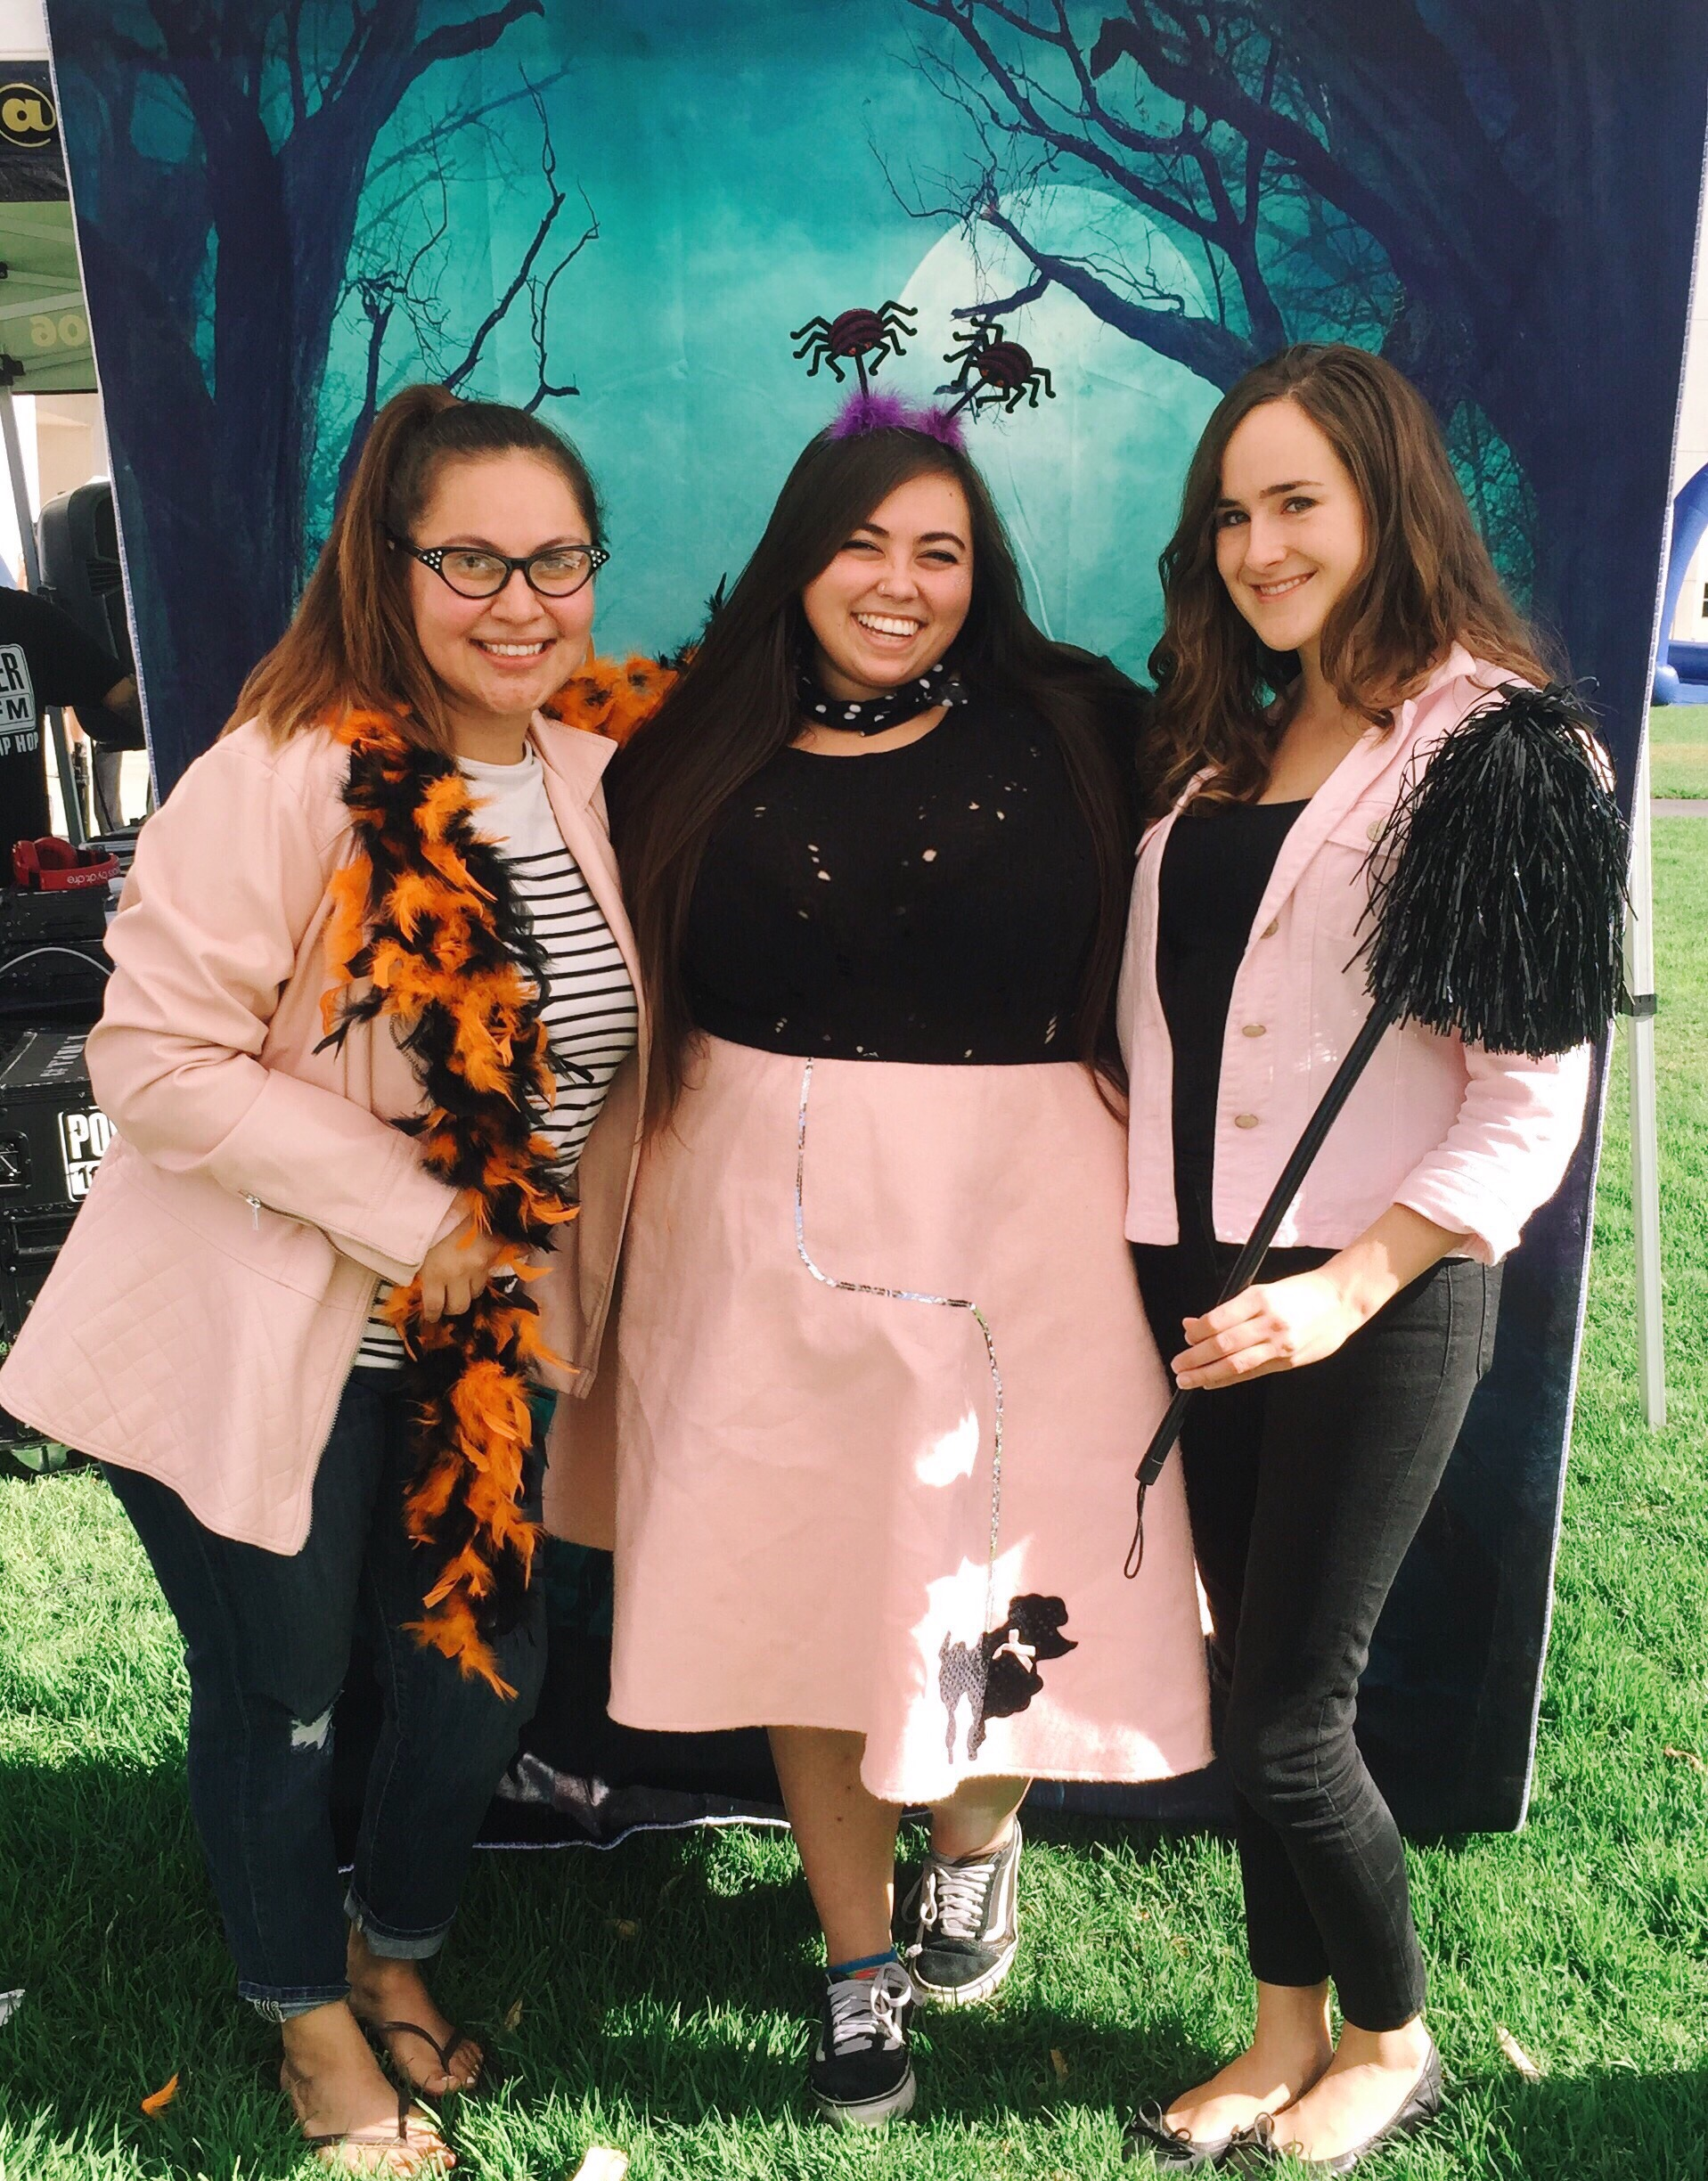 Mayra, Kiki, and Erica at fall fair